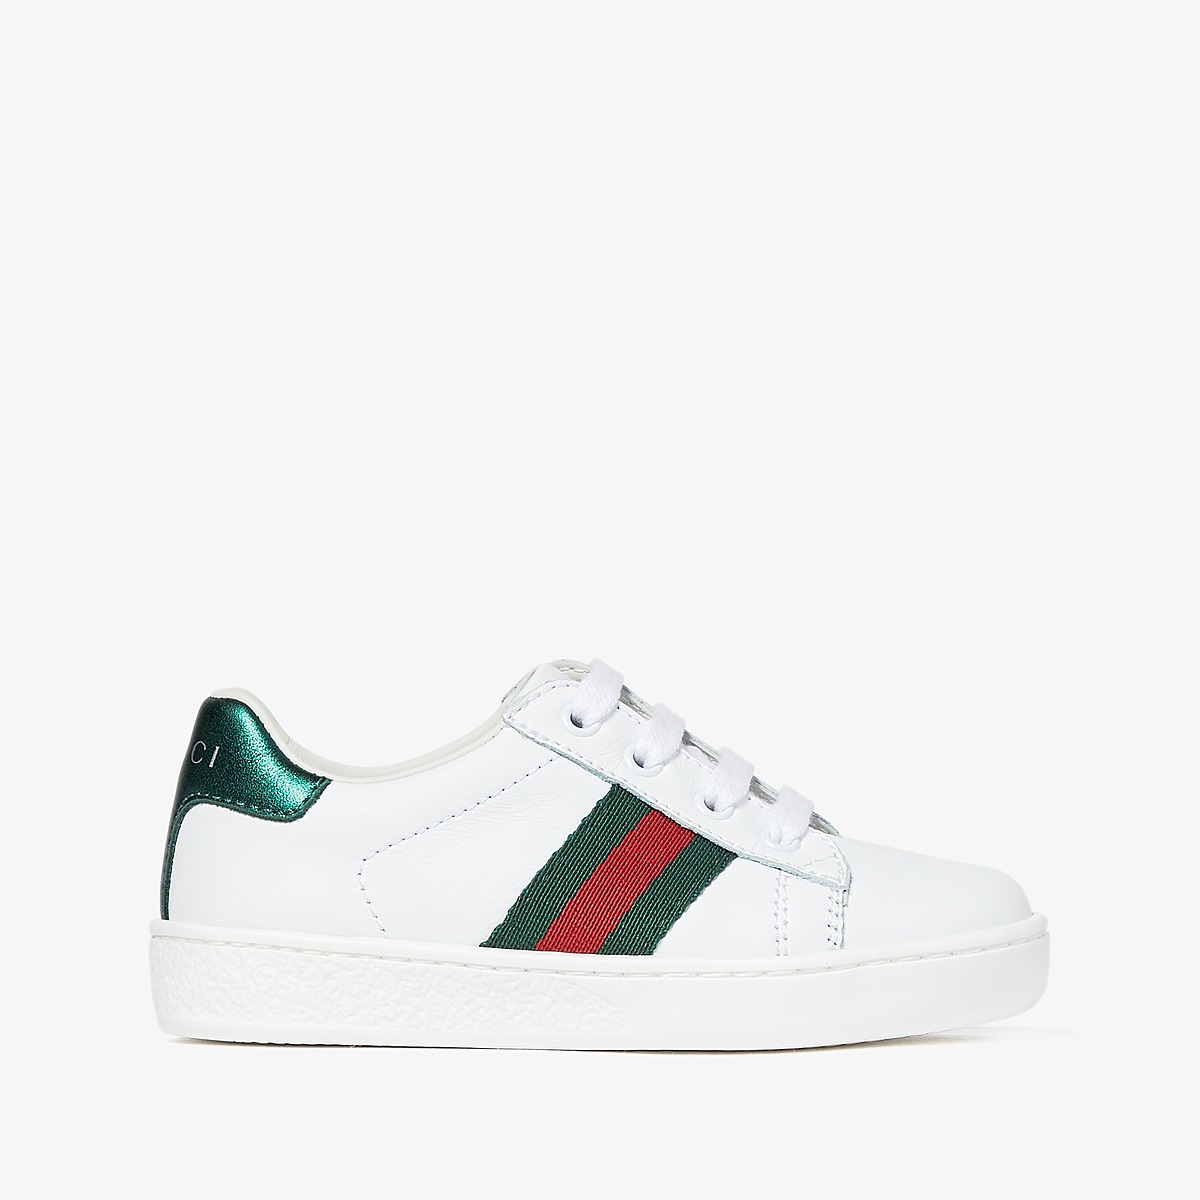 gucci new ace sneakers toddler at luxury zappos